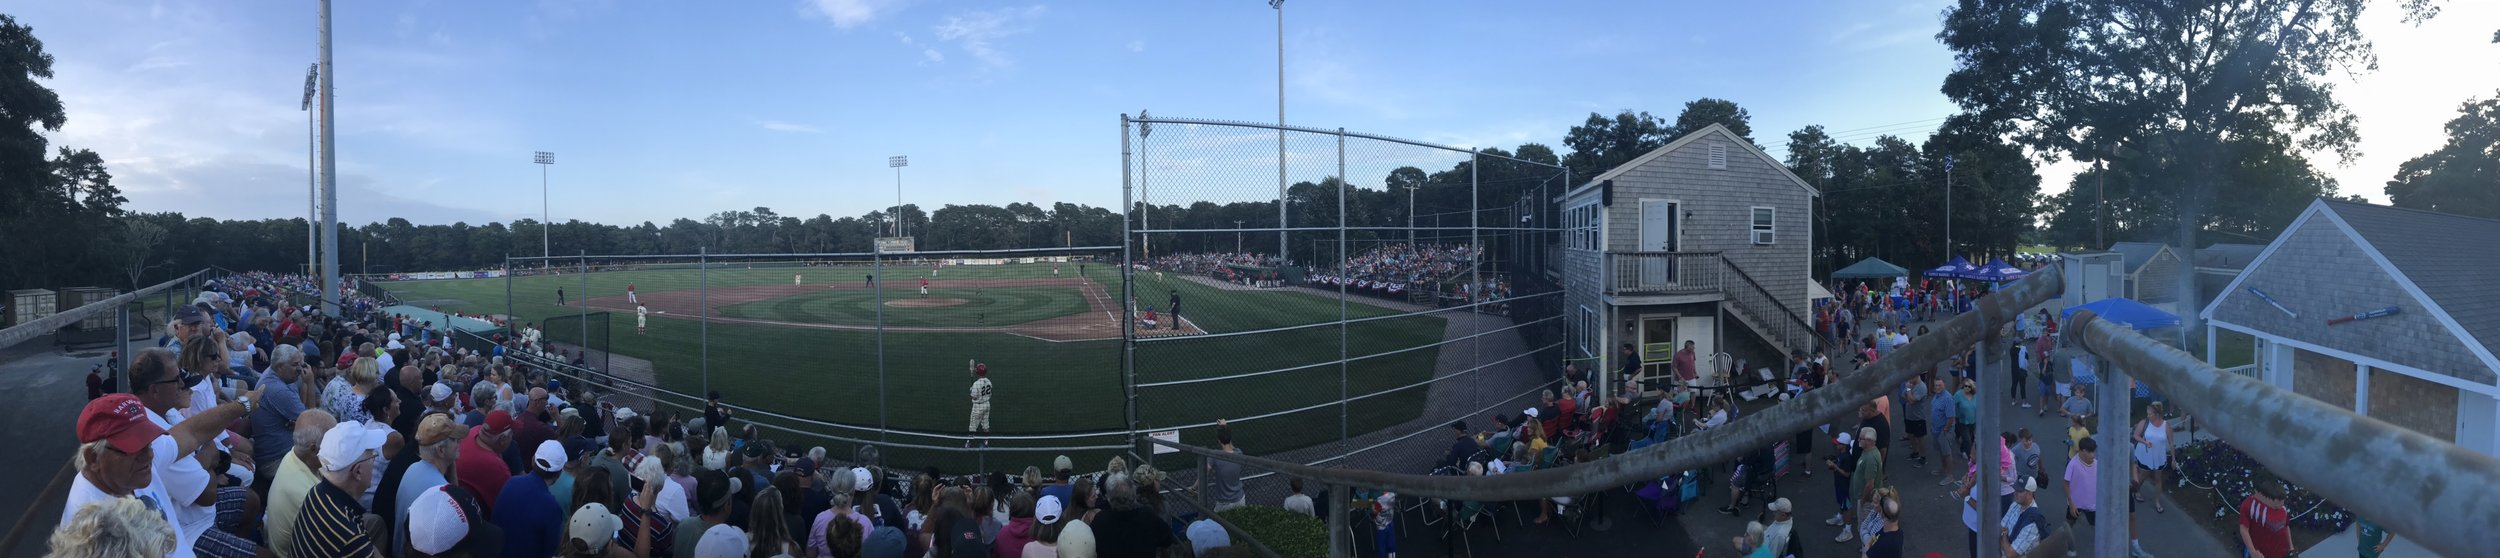 Game One of the 2019 Cape League Championship Series in Harwich.   Photo by Harrison Meyers.